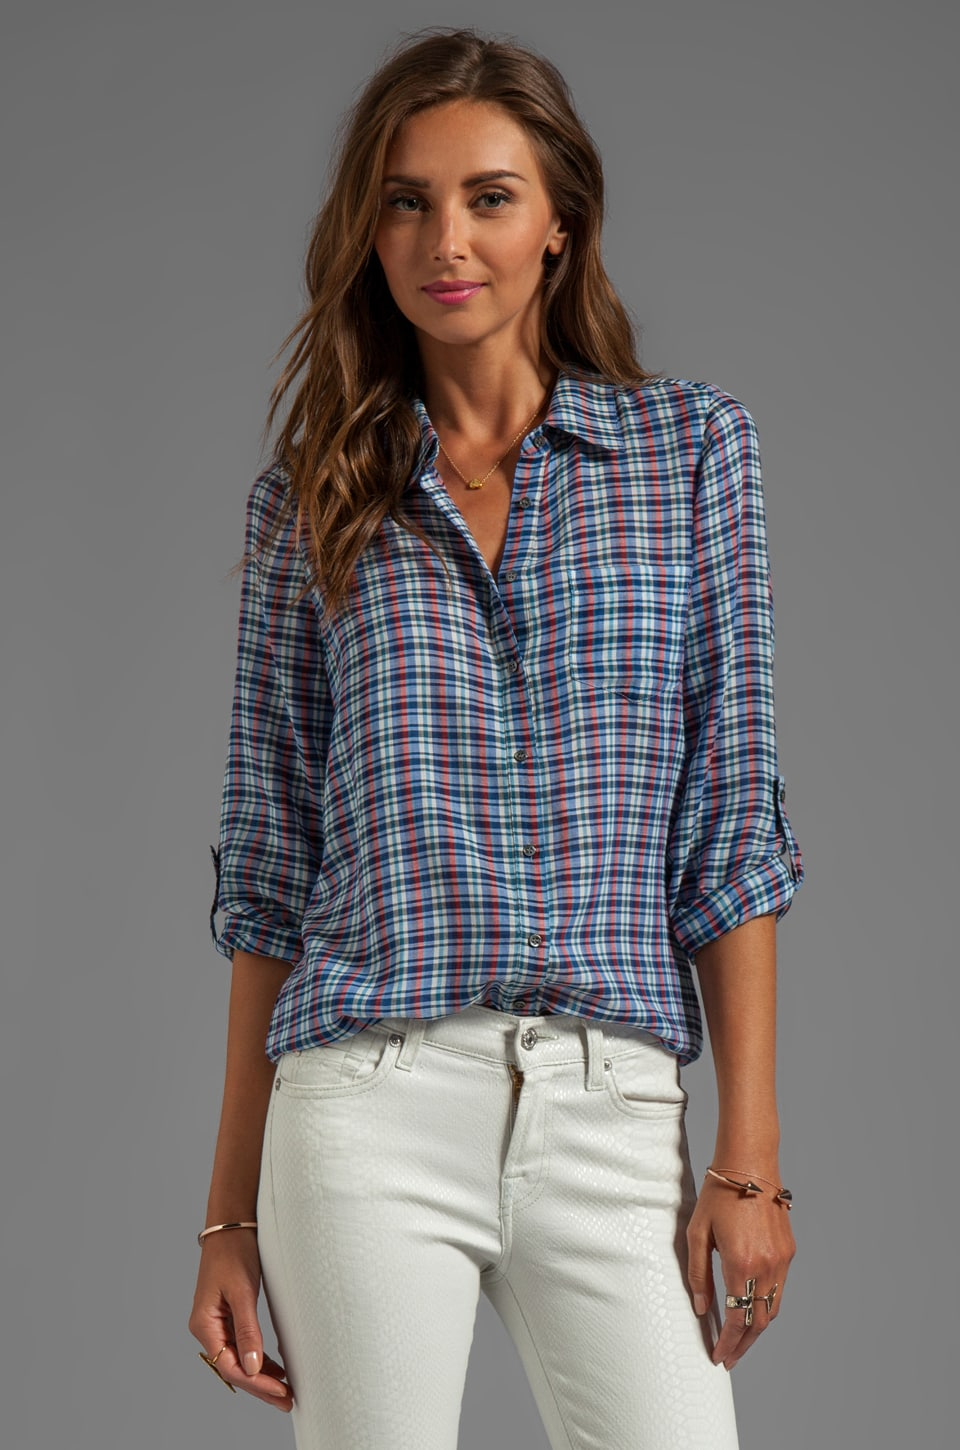 Joie Yard Dye Plaid Moshina Top in Peruvian Blue